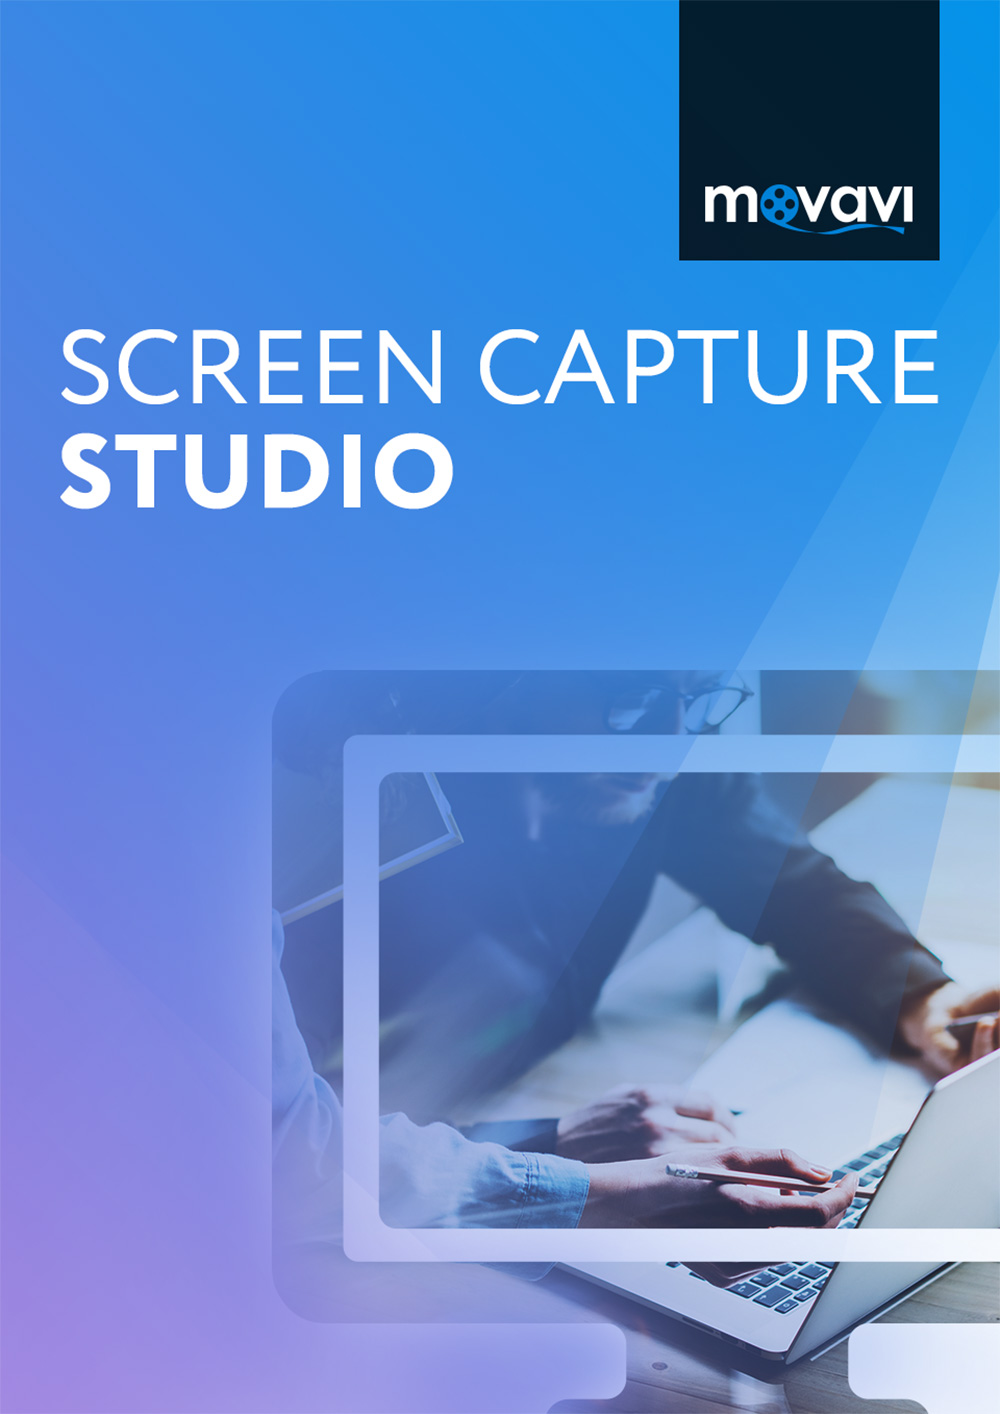 Movavi Screen Capture & Video Editor 9 Personal Edition [Download] (Recording Video Software)